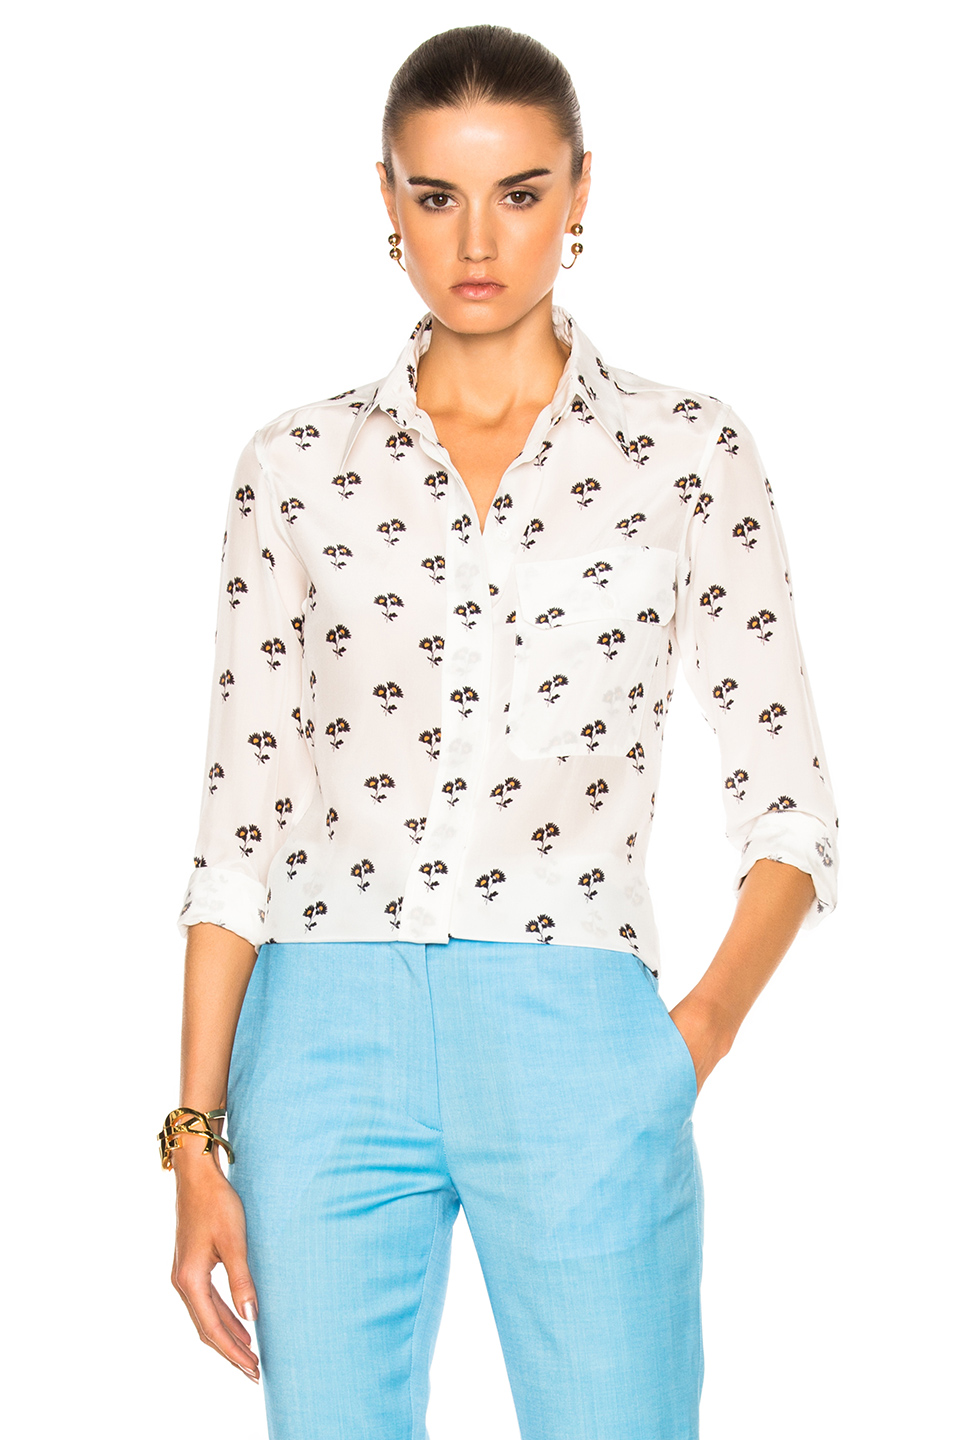 Victoria Beckham Daisy Print Blouse in Floral,White